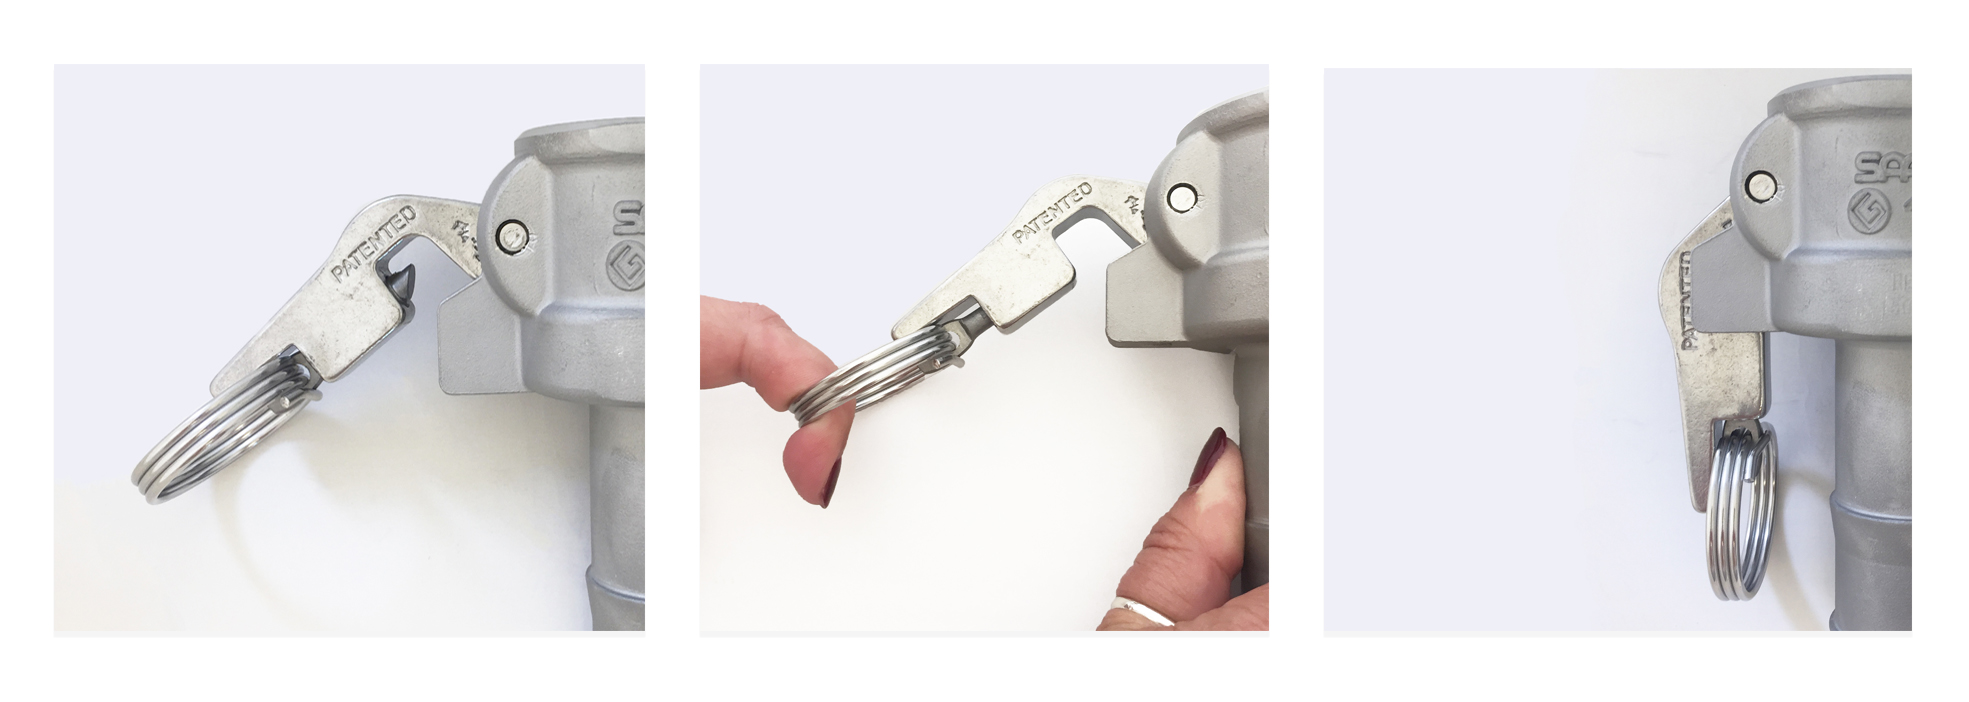 The Ultimate Guide To Camlock Fittings   Action Sealtite